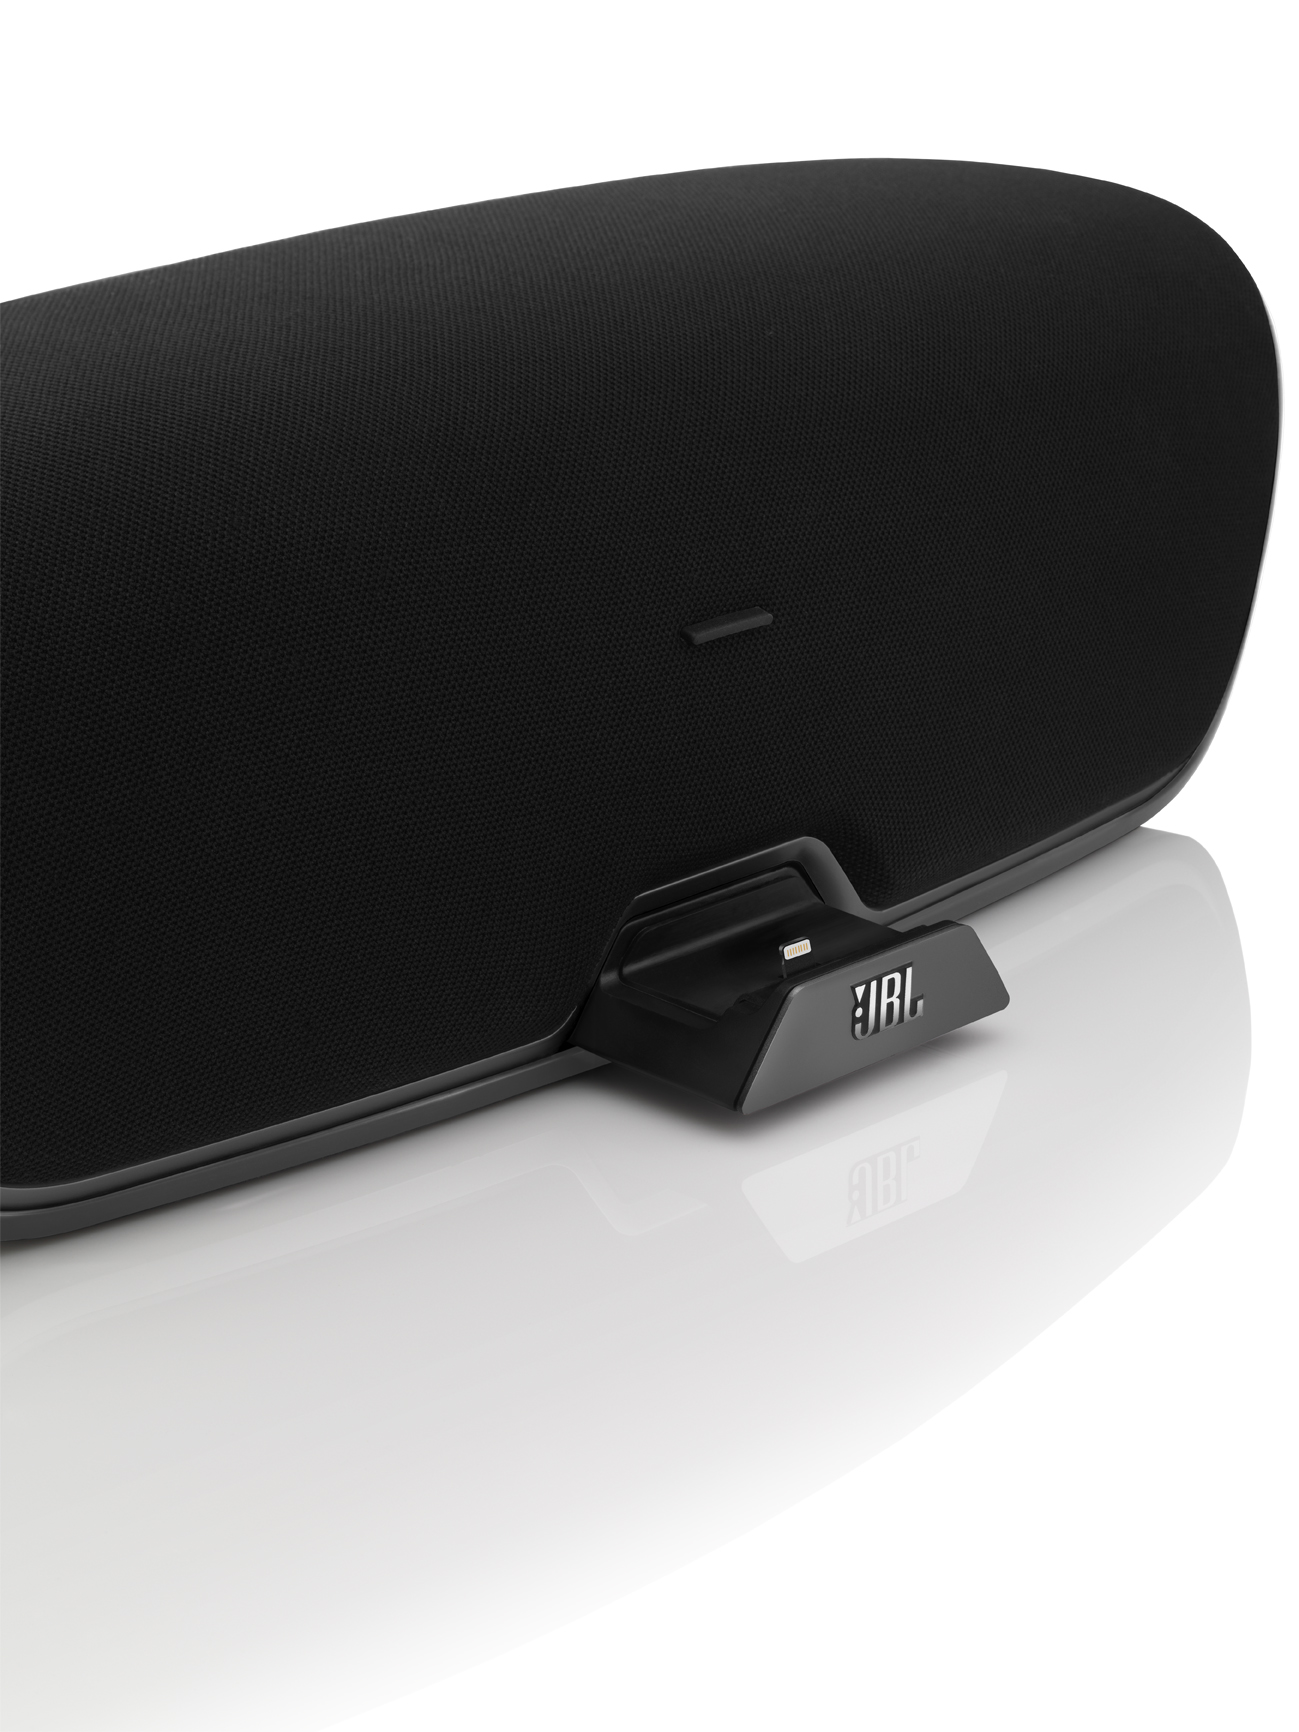 HARMAN Becomes First Vendor To Offer Speaker Docks For Lightning Devices